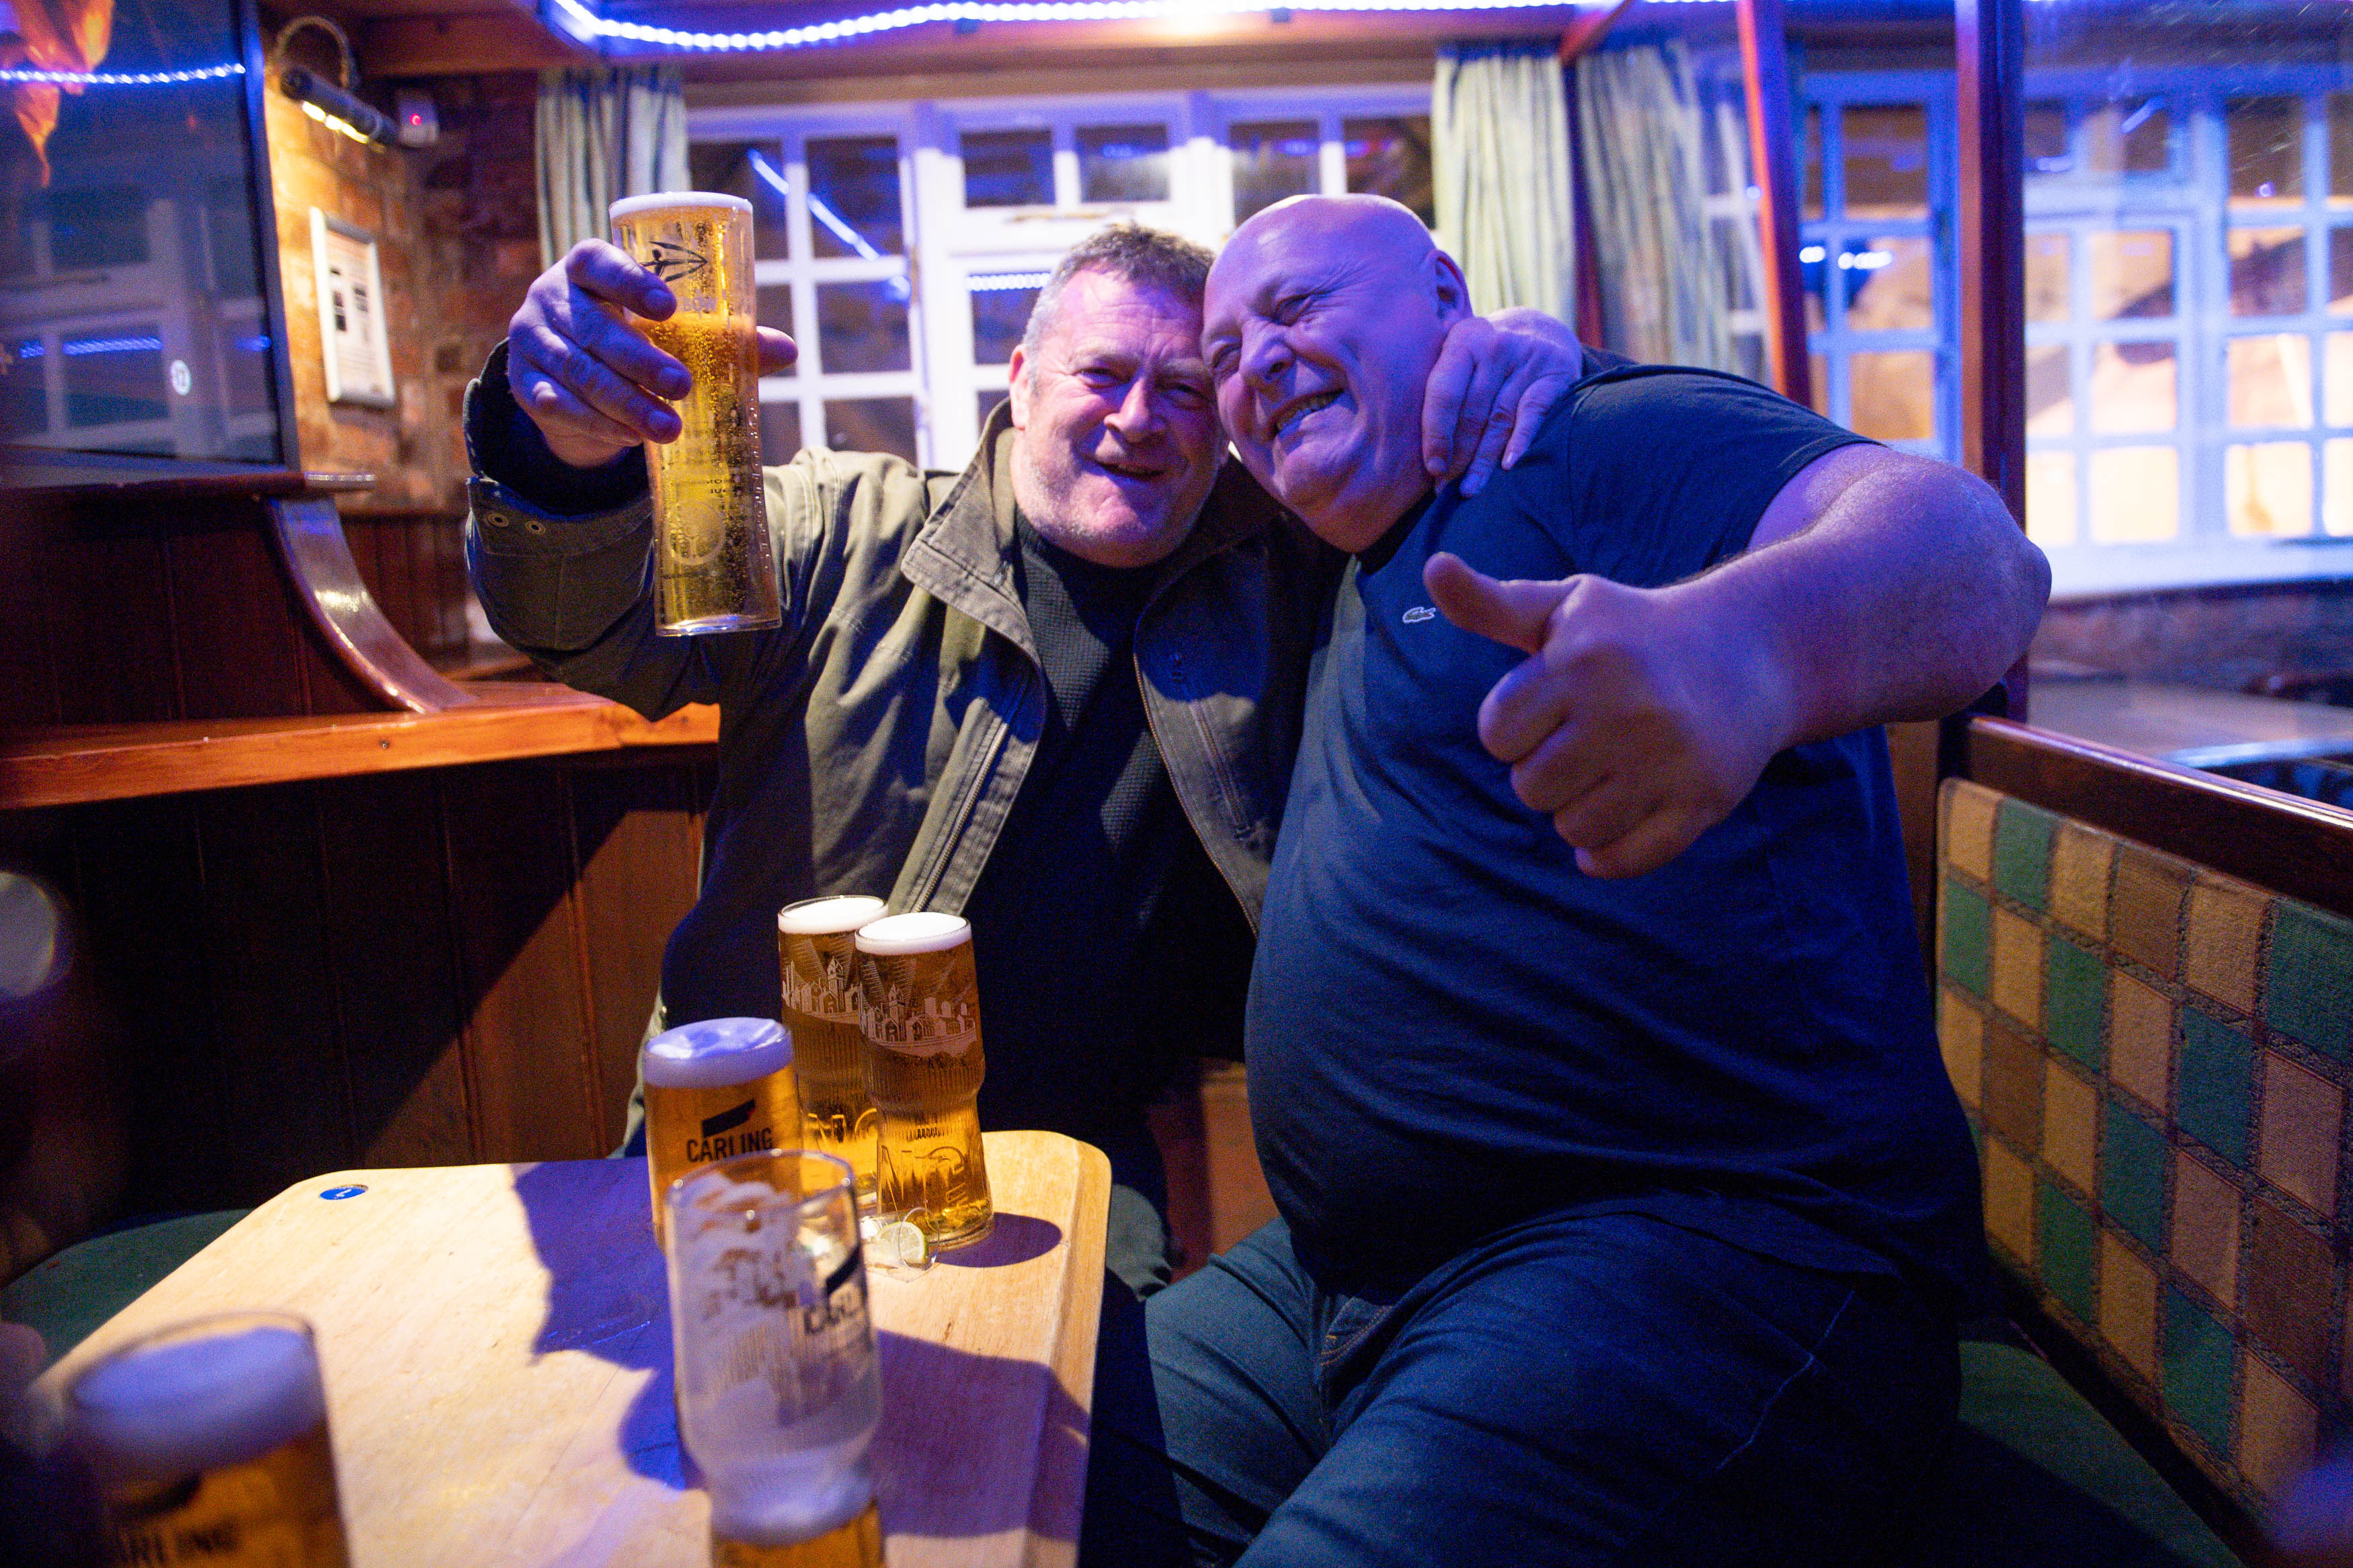 <p>Customers at the The Oak Inn in Coventry, West Midlands, as indoor hospitality and entertainment venues reopen to the public following the further easing of lockdown restrictions in England. Picture date: Monday May 17, 2021.</p>